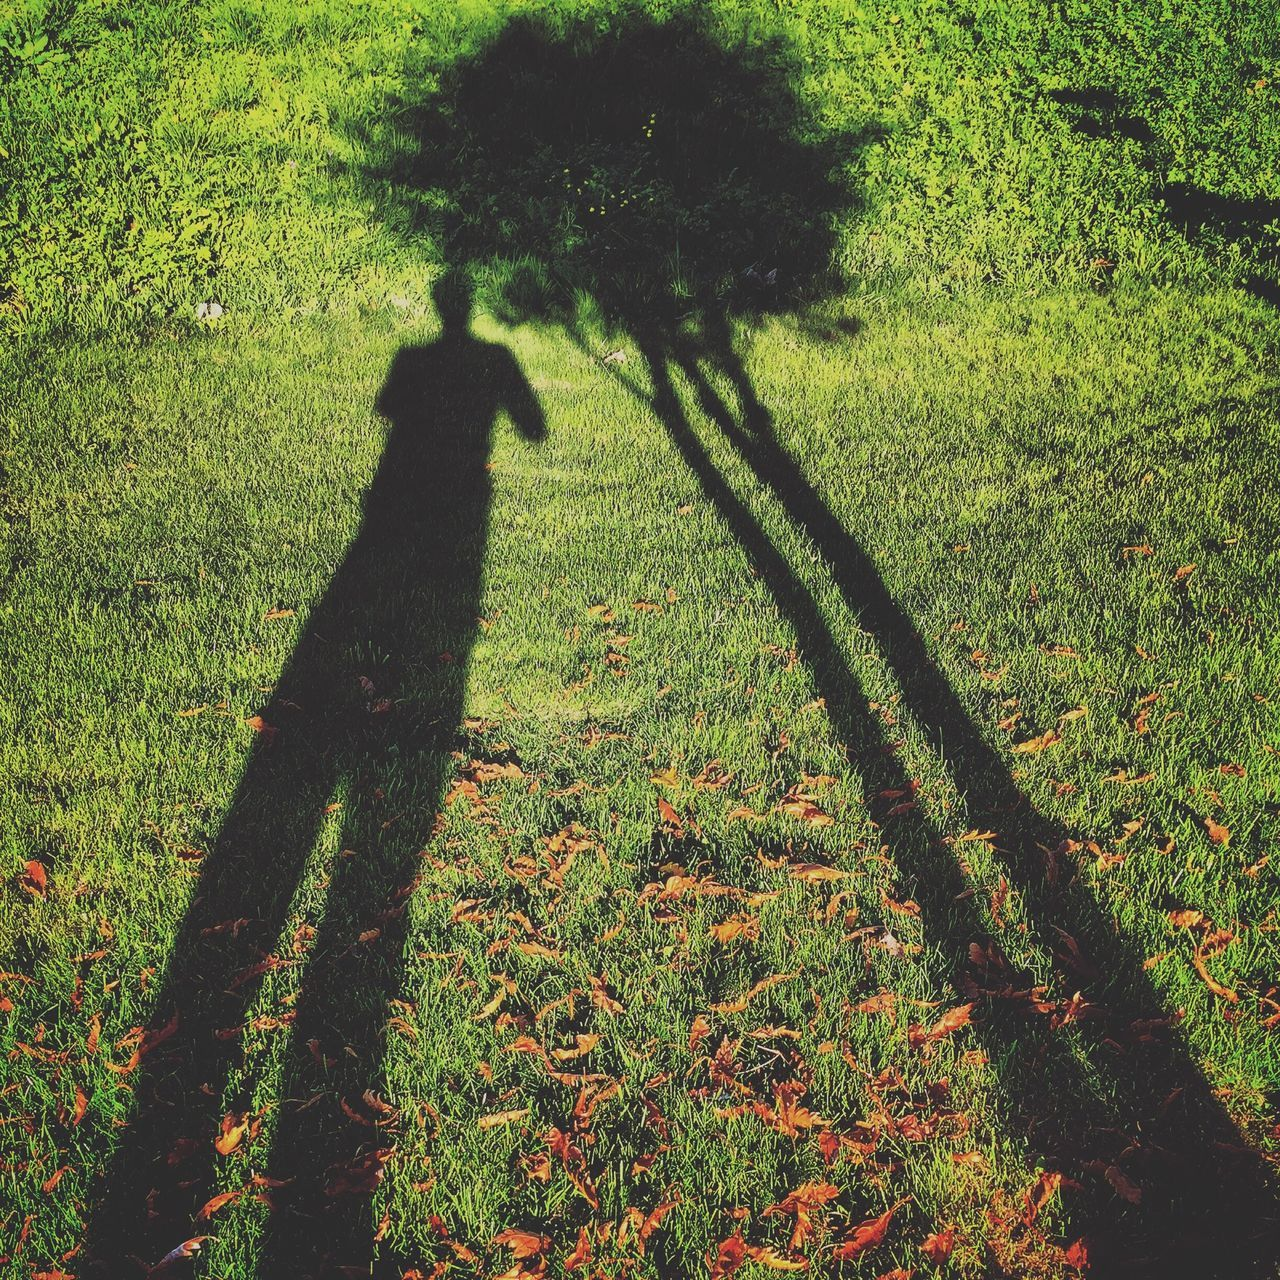 grass, shadow, green color, growth, focus on shadow, real people, field, one person, nature, sunlight, silhouette, tree, day, outdoors, people